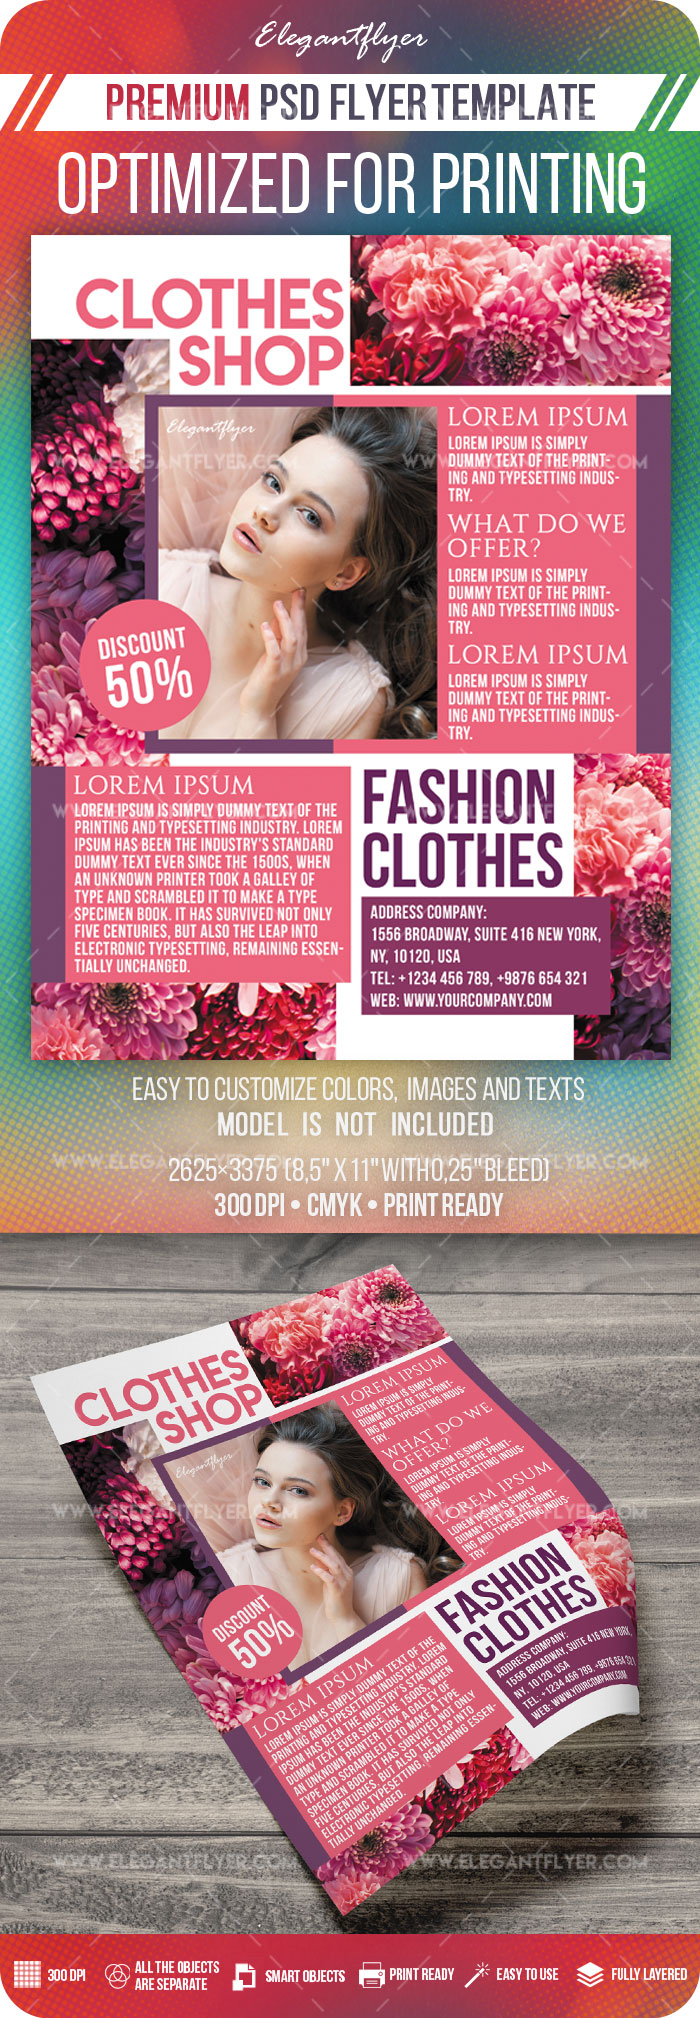 Clothes Shop – Premium PSD Flyer Template